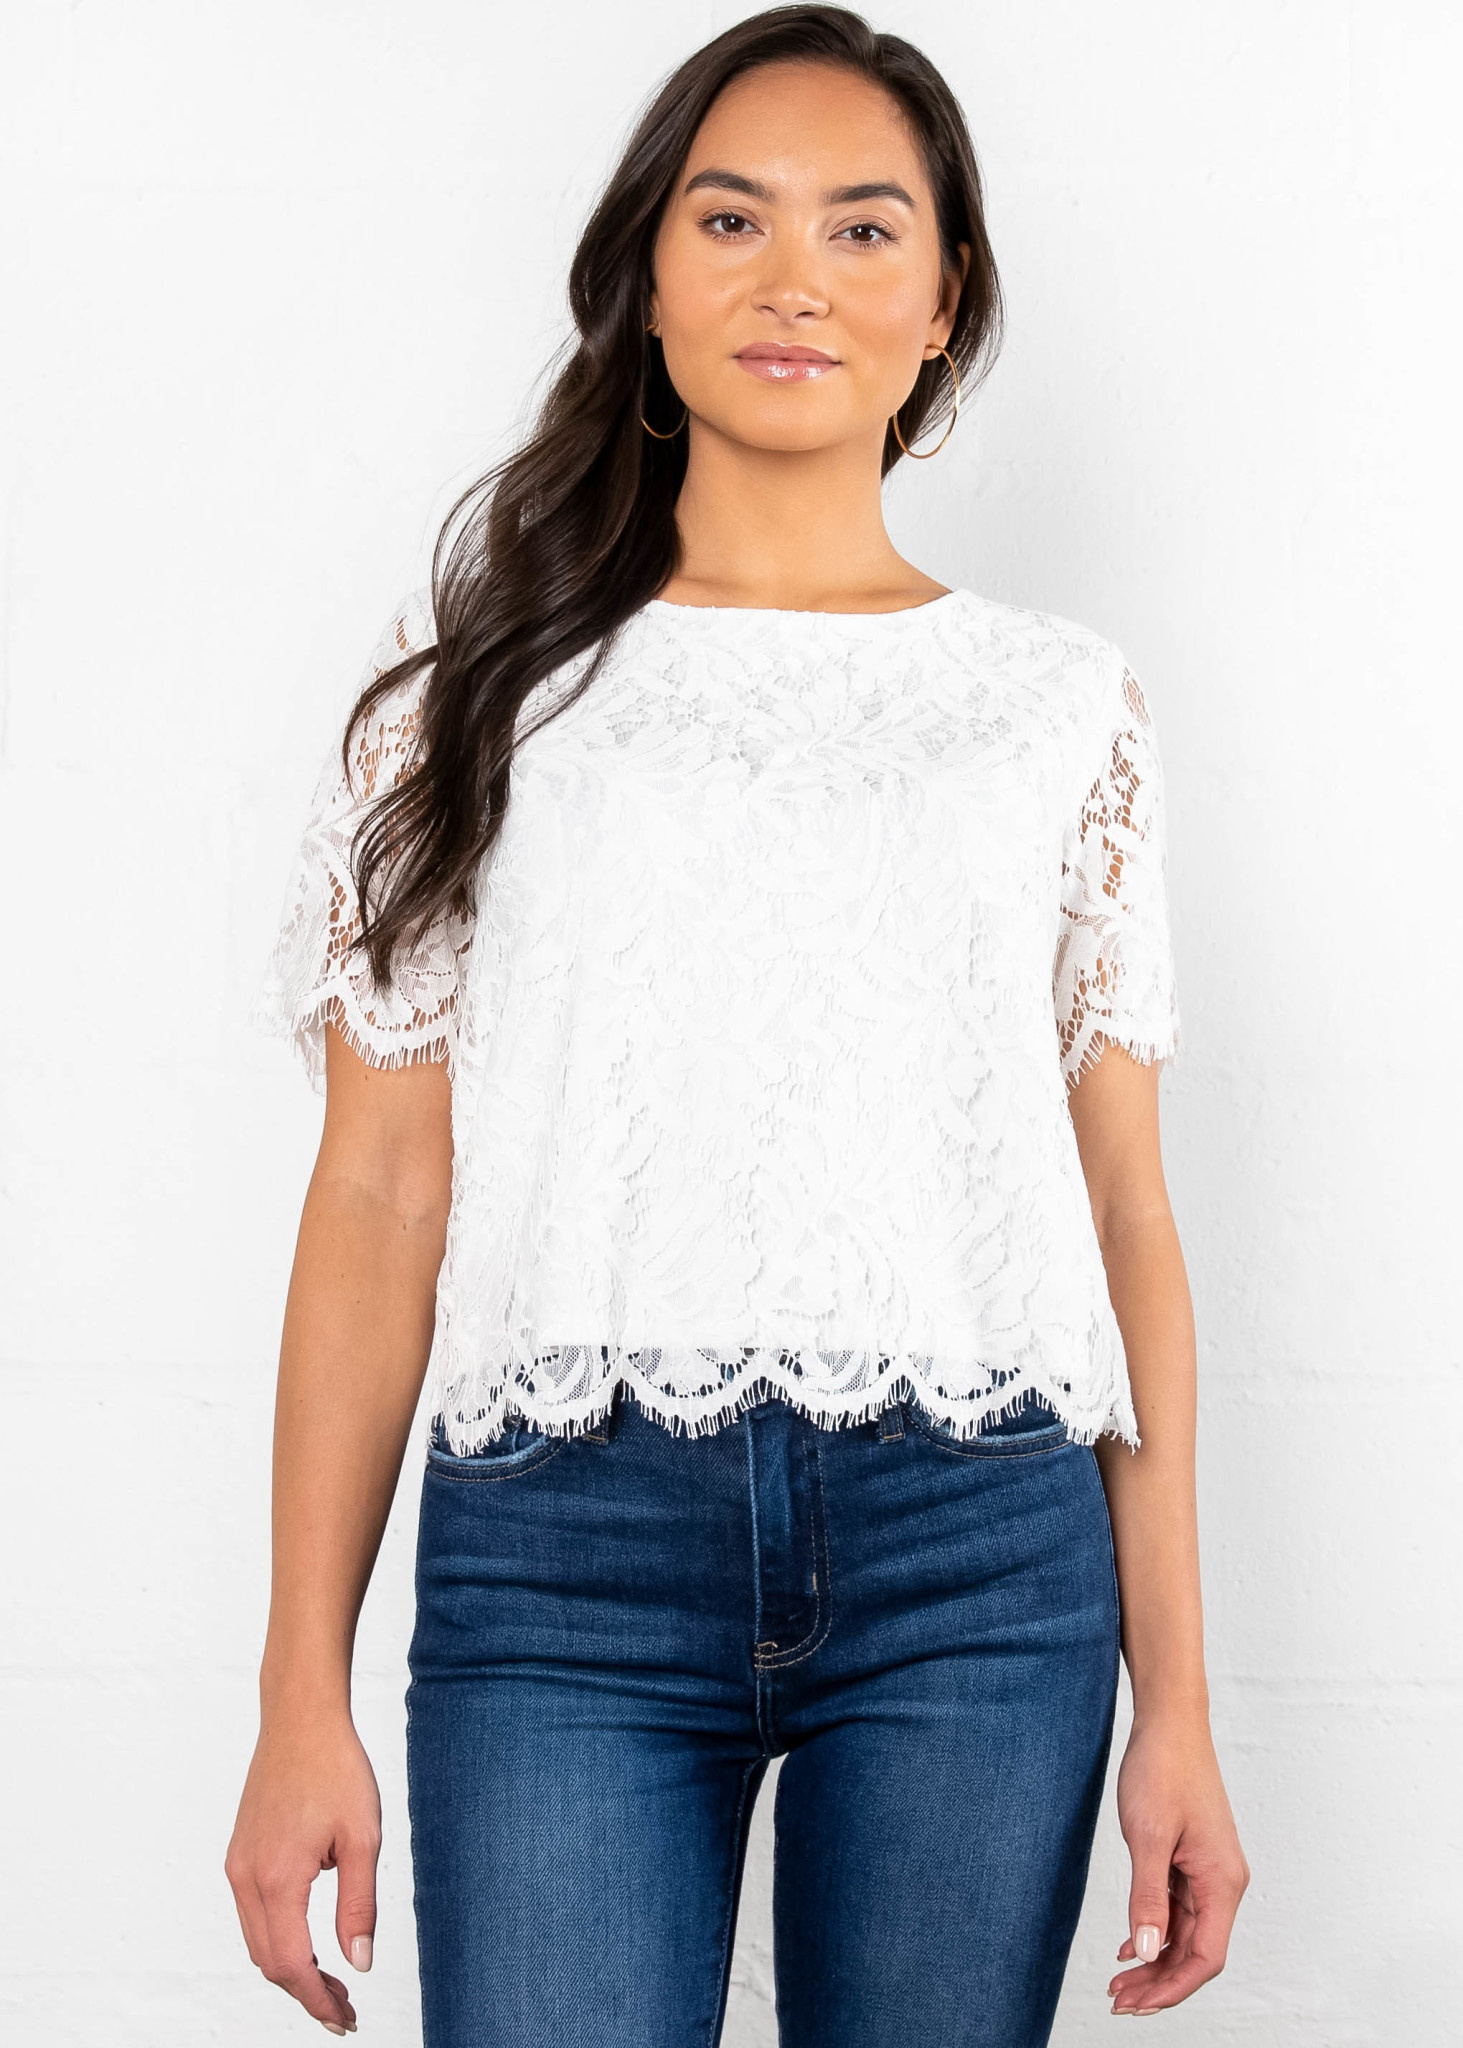 WALK TO YOU LACE TOP - IVORY